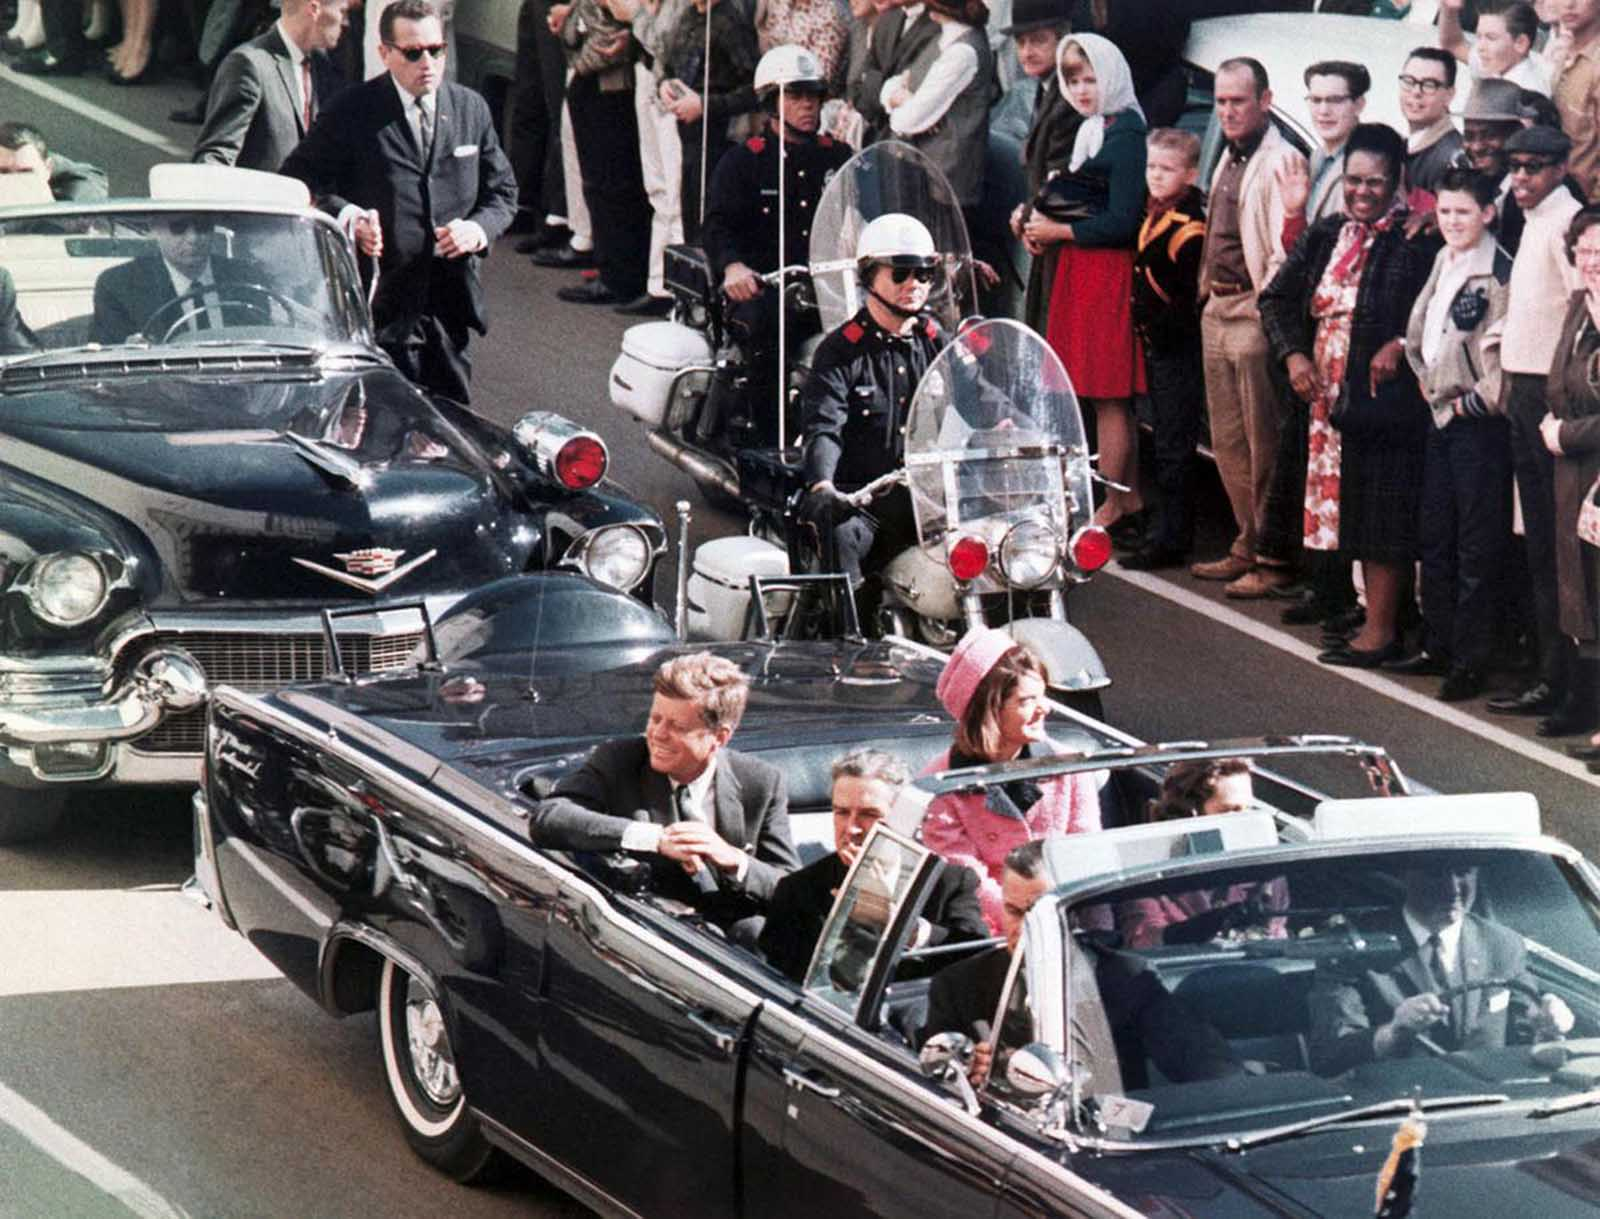 President John F. Kennedy's motorcade in Dallas, November 22, 1963.